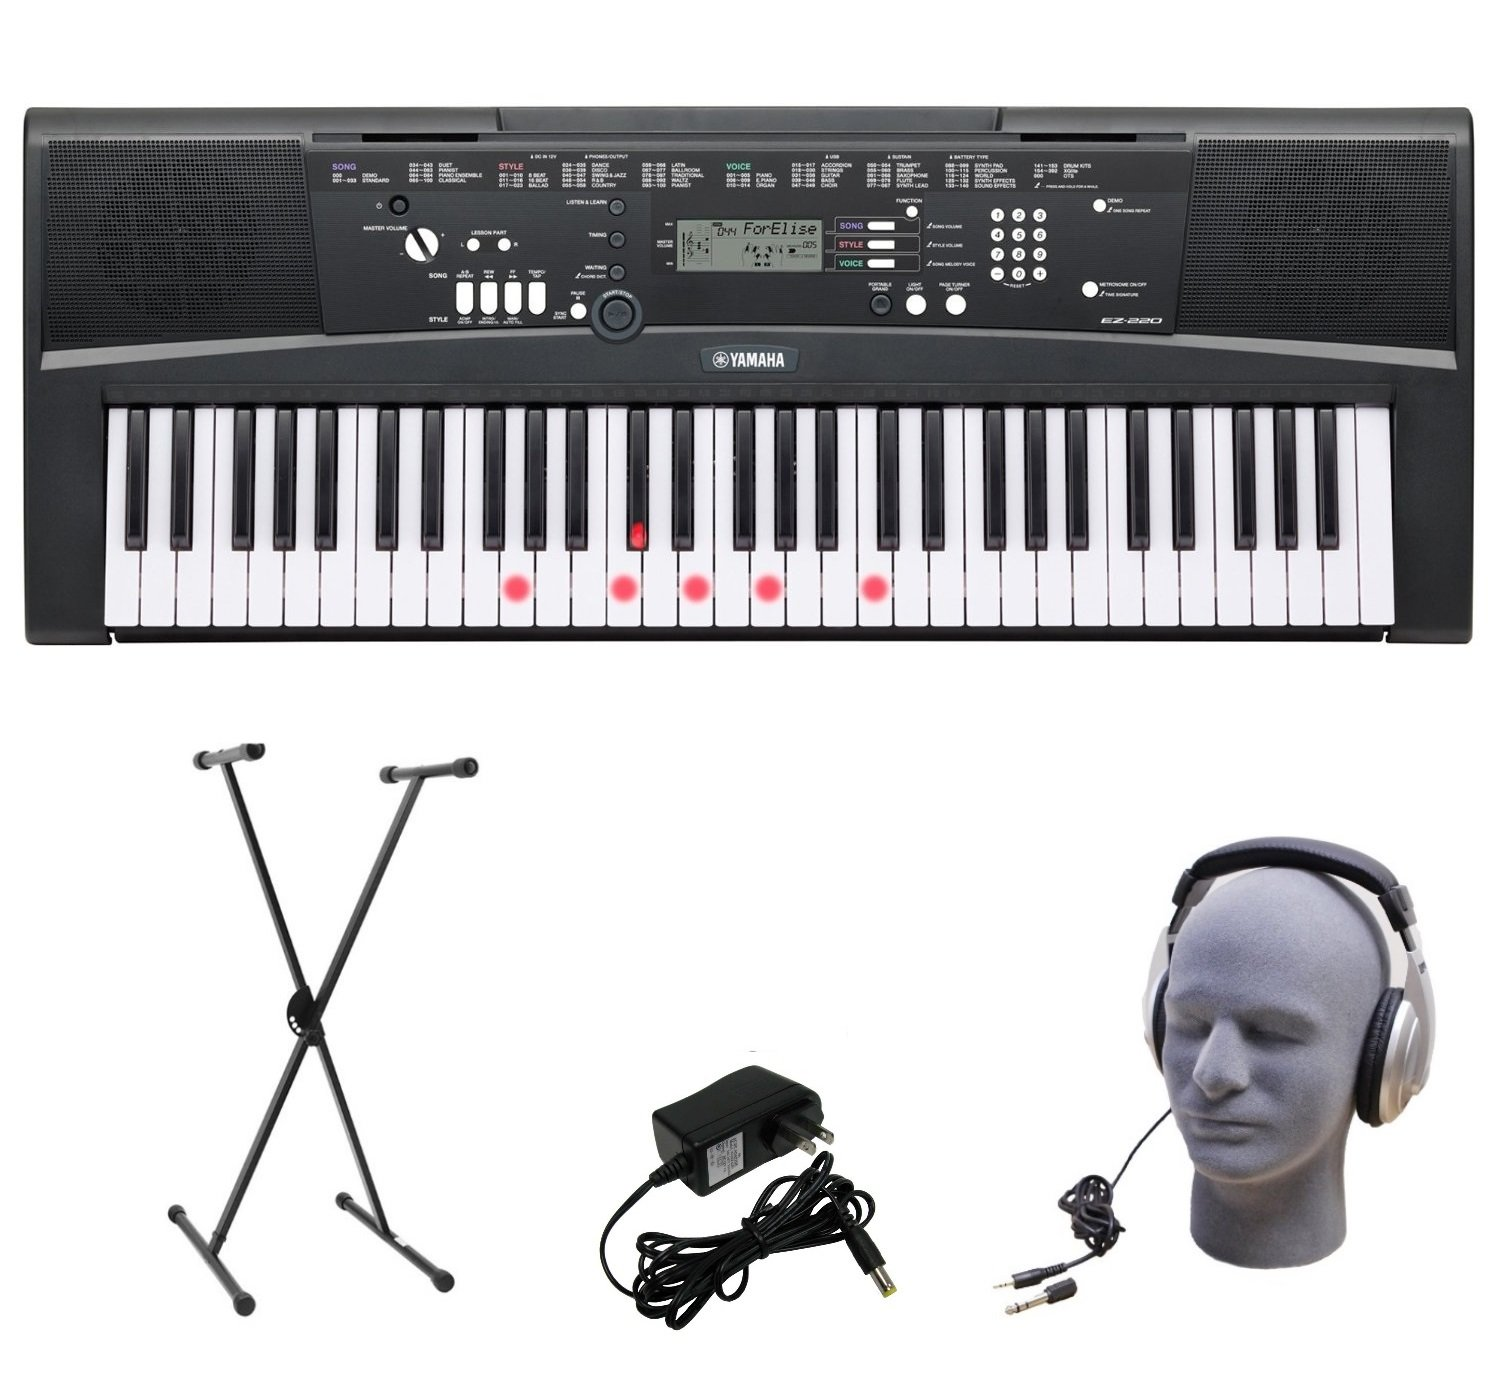 Yamaha EZ-220 61-Lighted Key Portable Keyboard Package with Headphones, Stand and Power Supply by YAMAHA